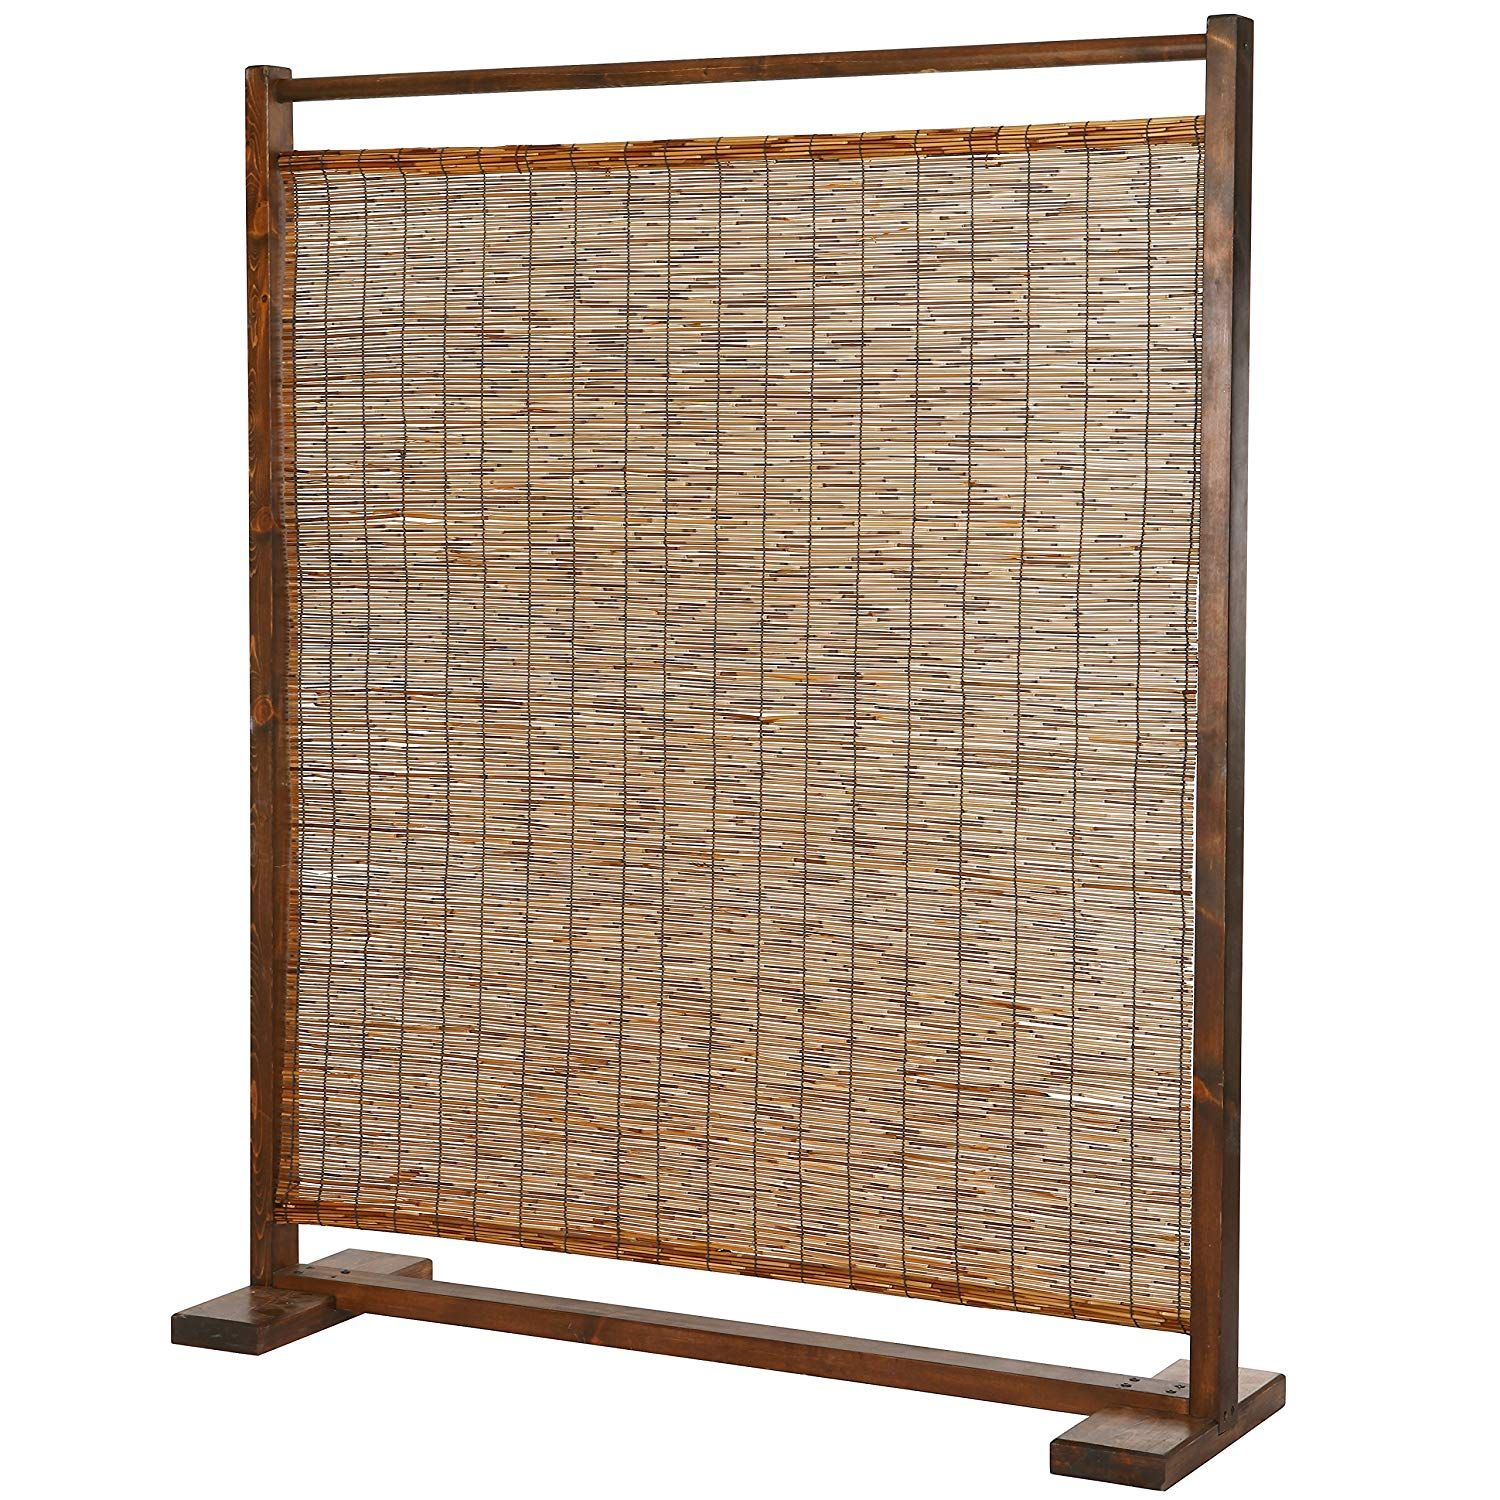 Amazon Com Mygift Freestanding Rustic Style Wood Reed Single Panel Room Divider Brown Kitchen Dining Room Divider Bamboo Room Divider Rustic Style